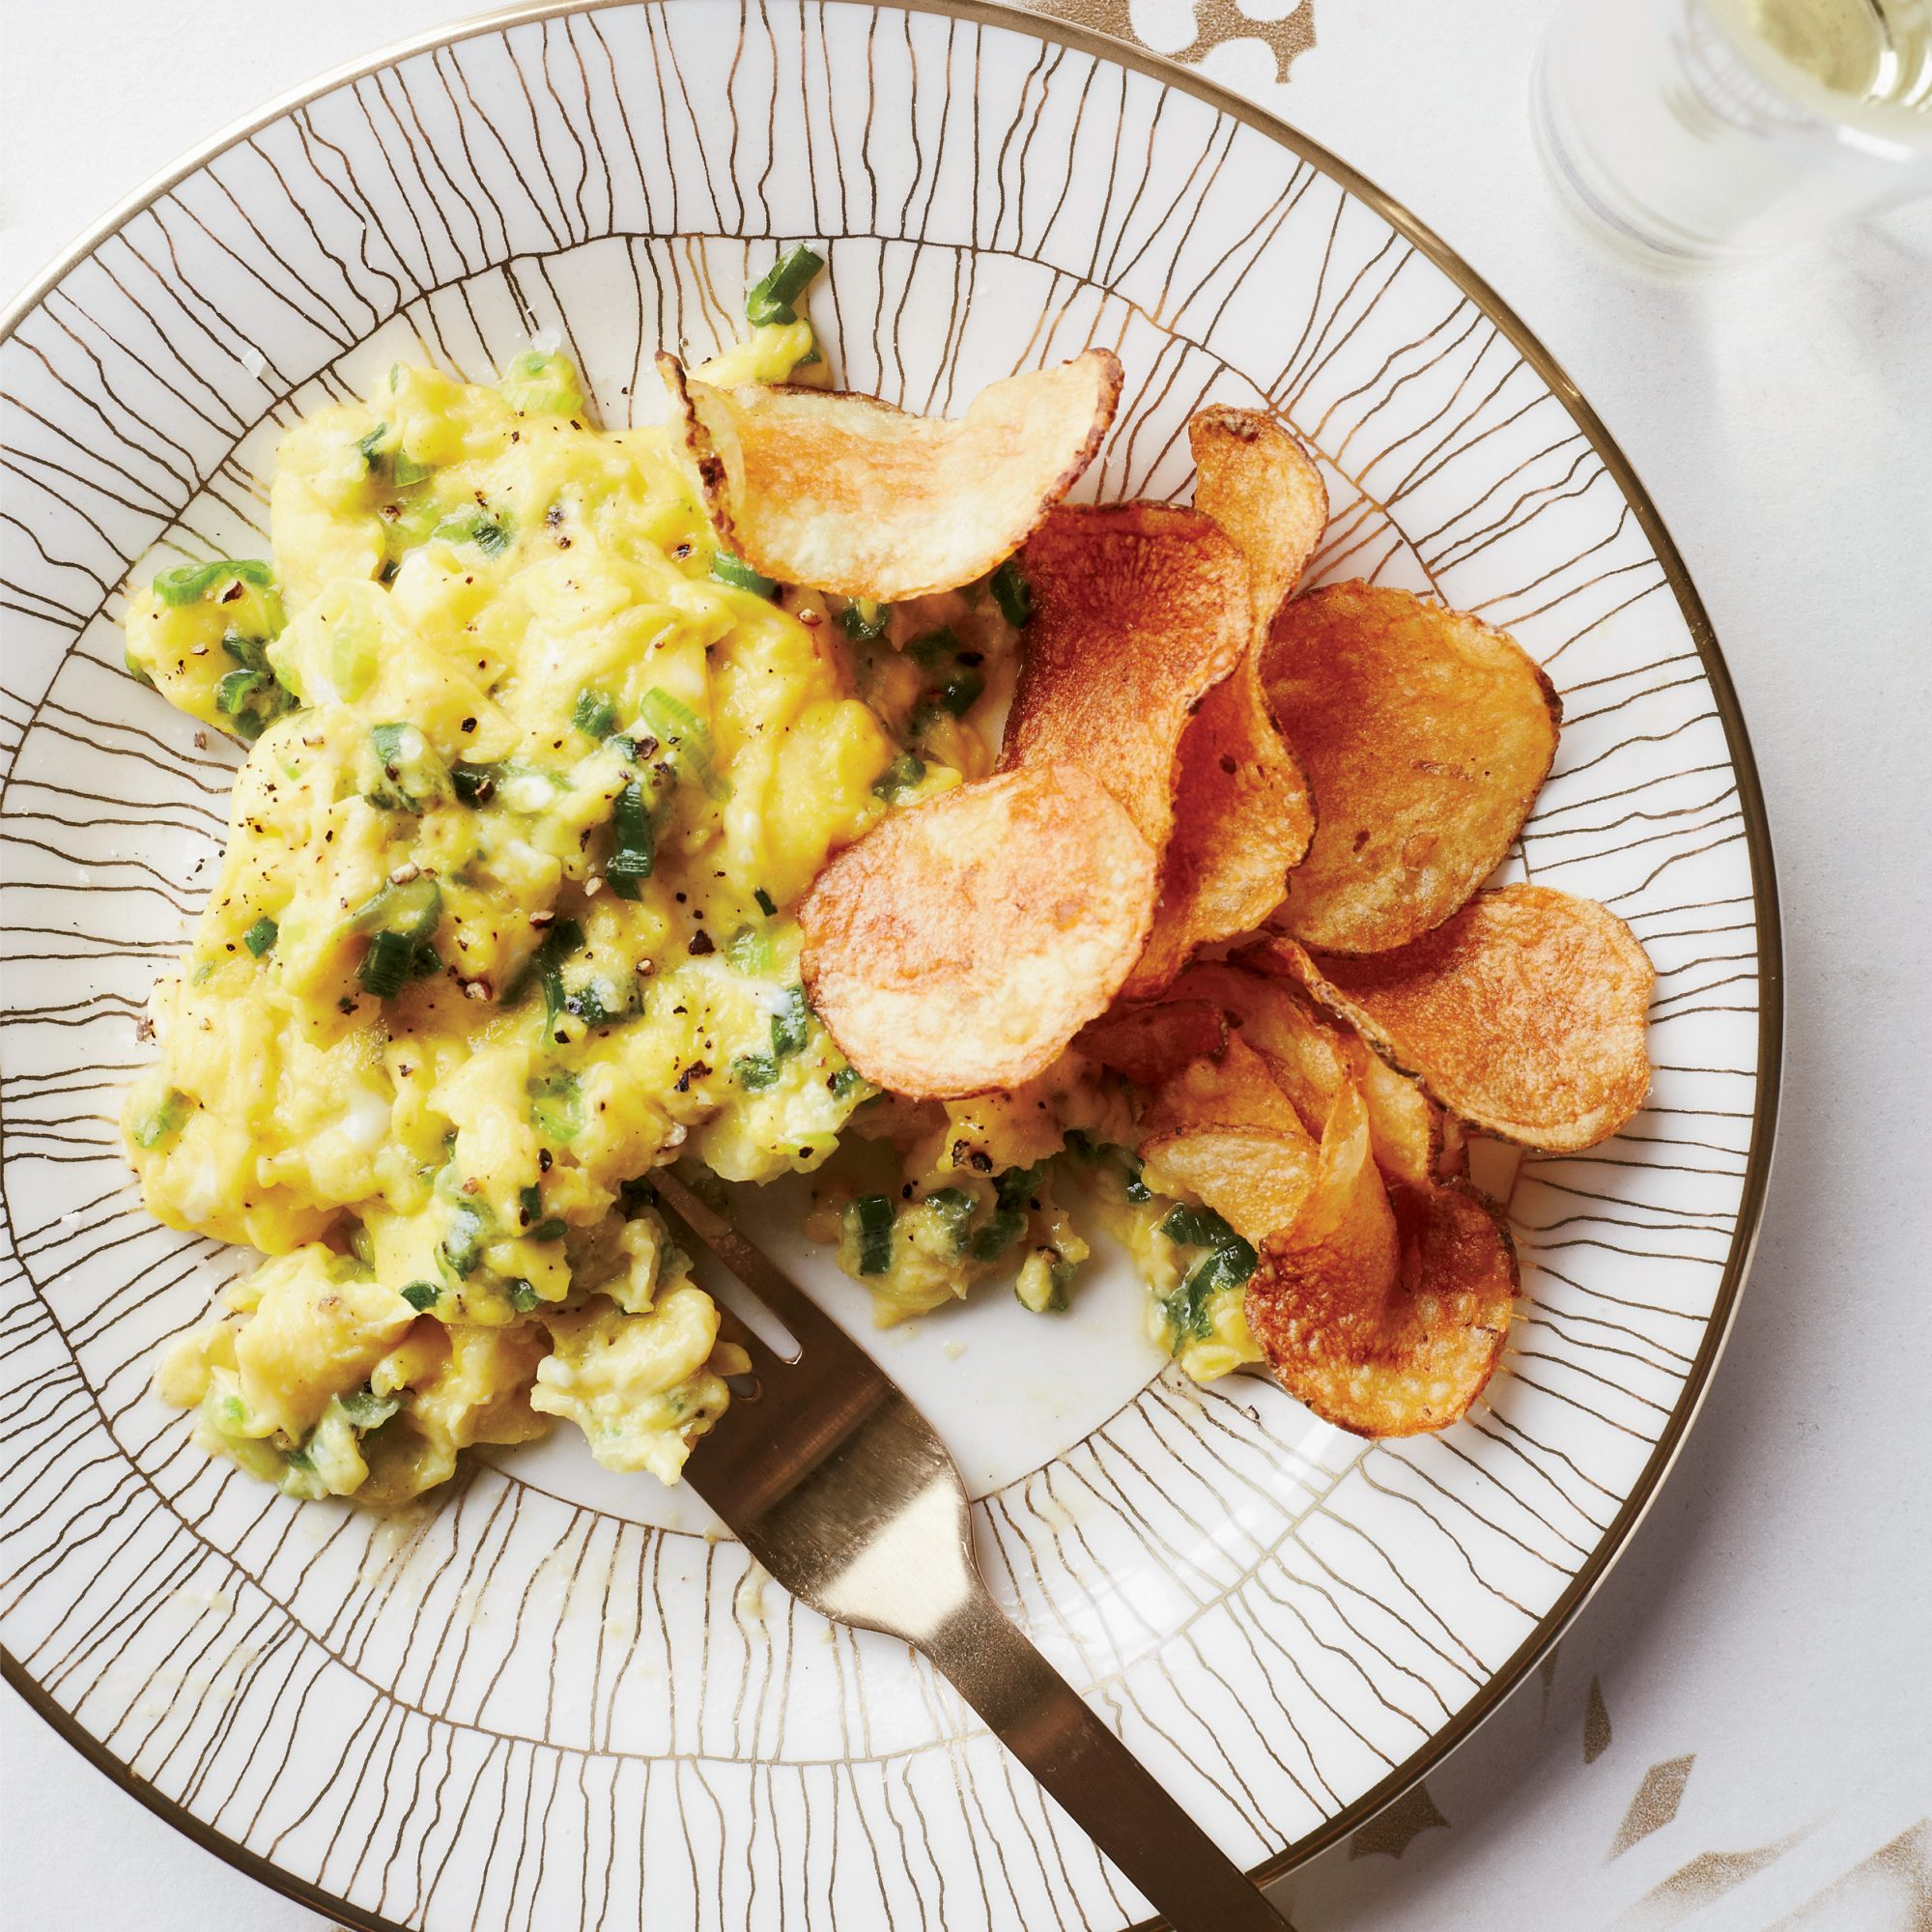 201404-r-scallion-scrambled-eggs-with-potato-chips.jpg